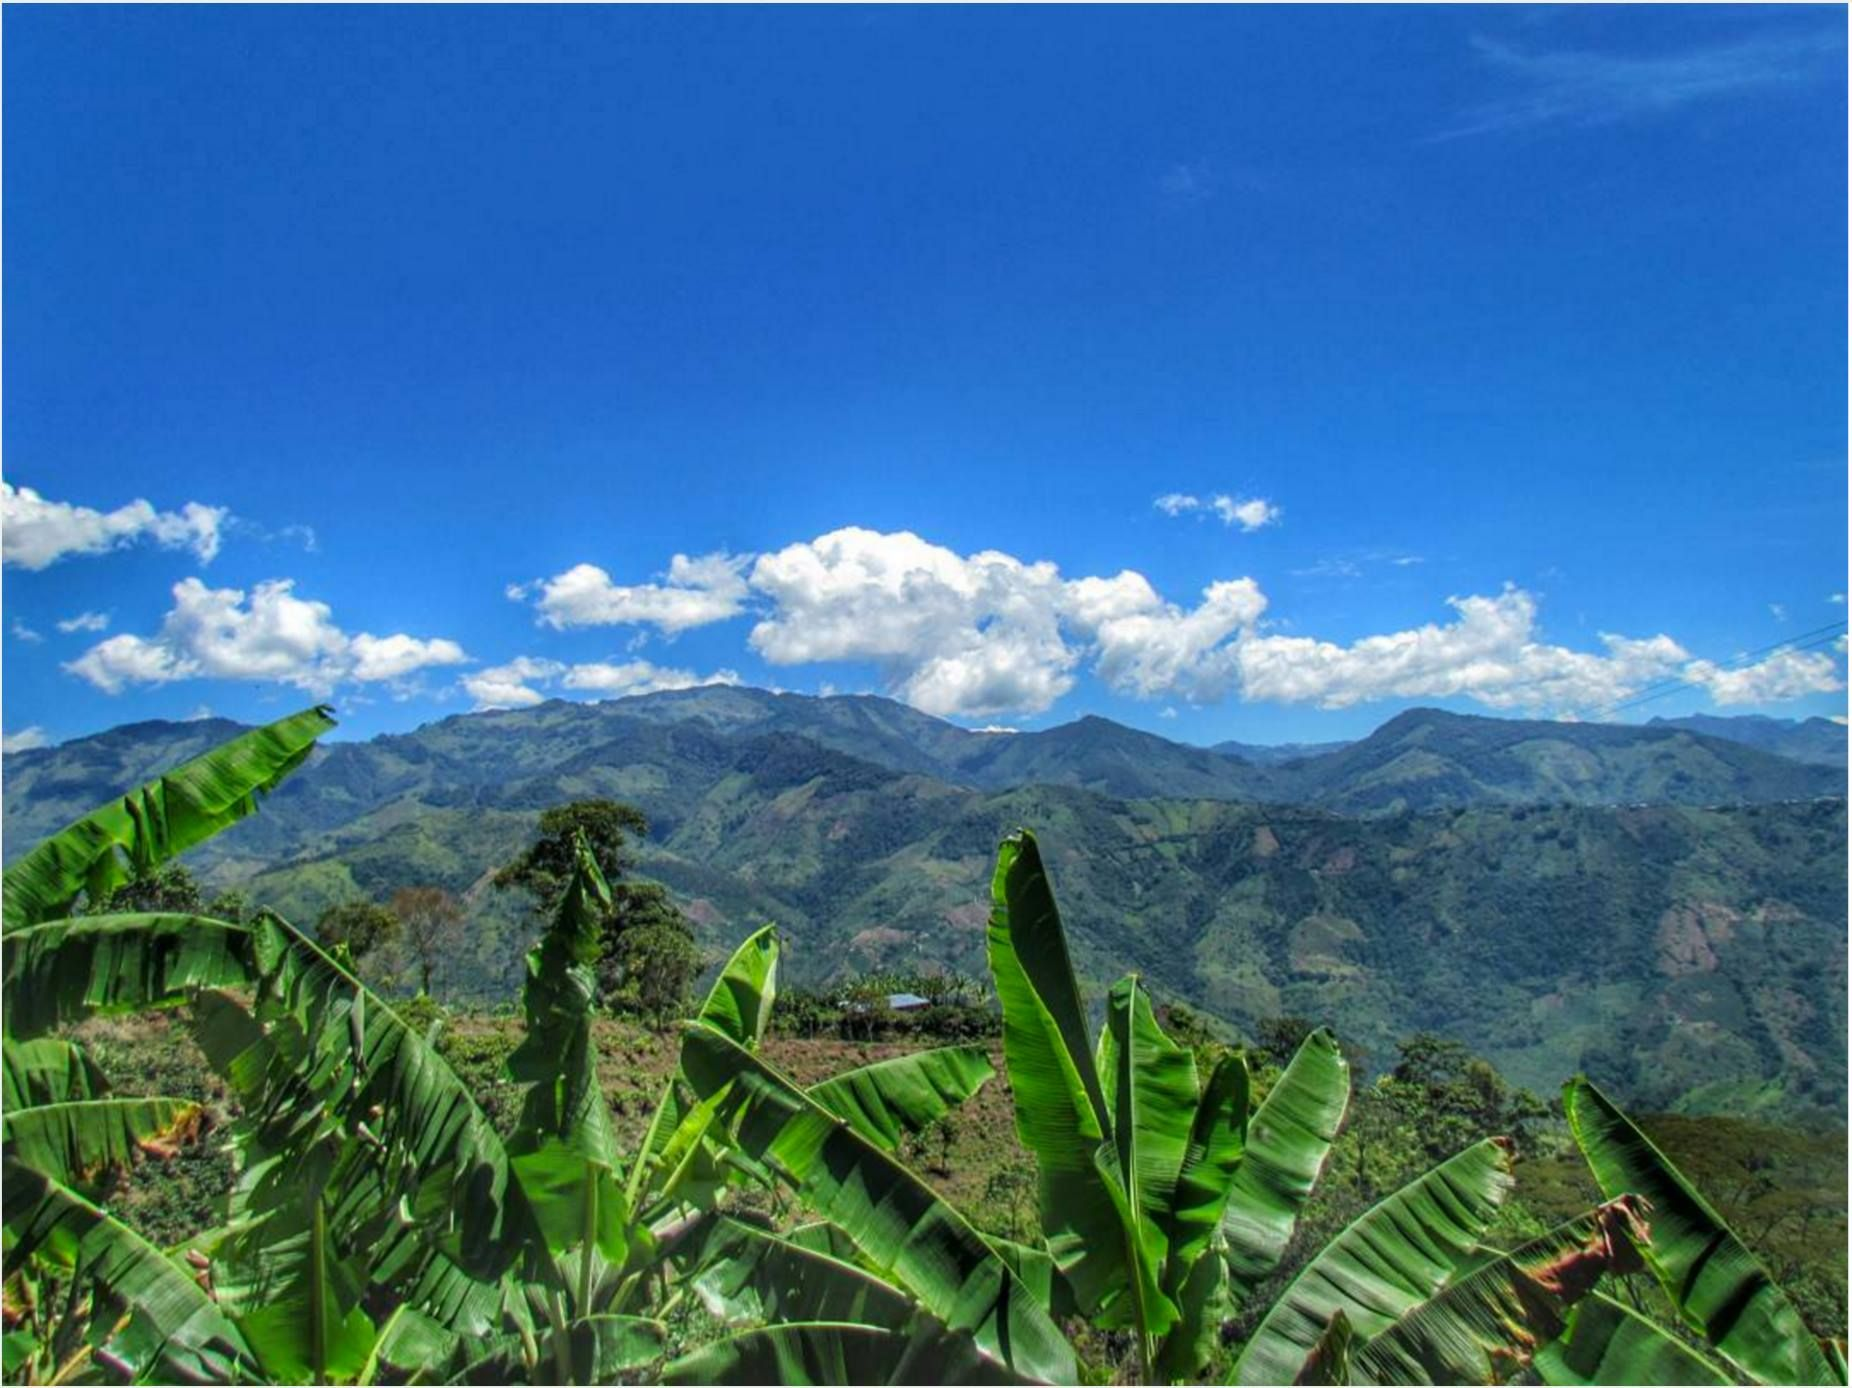 Beautiful landscape of Ibague outskirts full of mountains and nature.